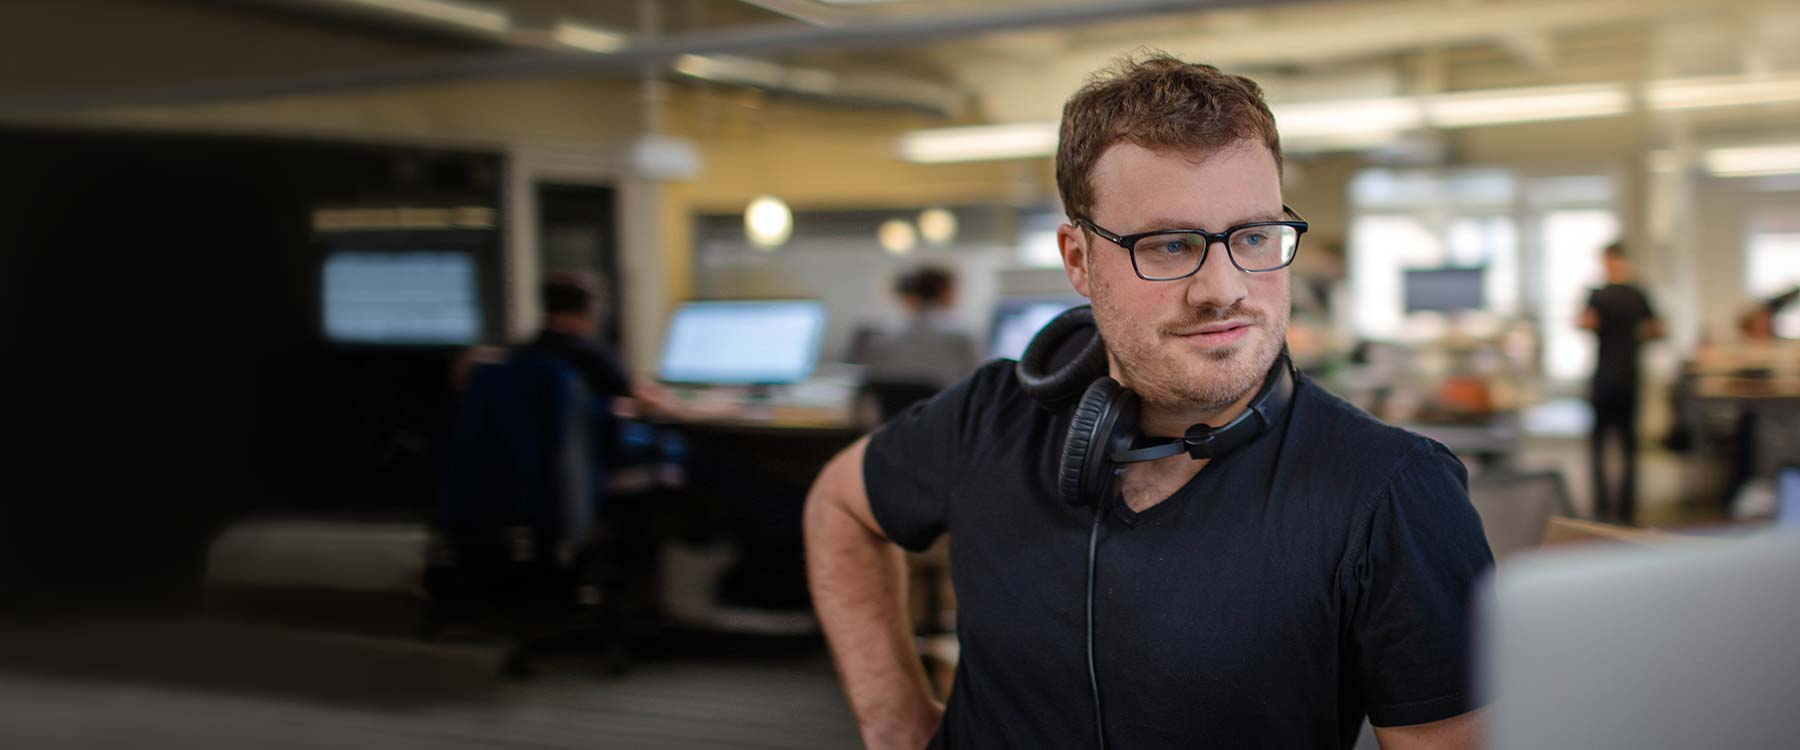 Chris leans against a desk and looks toward a computer screen. He wears headphones around his neck.